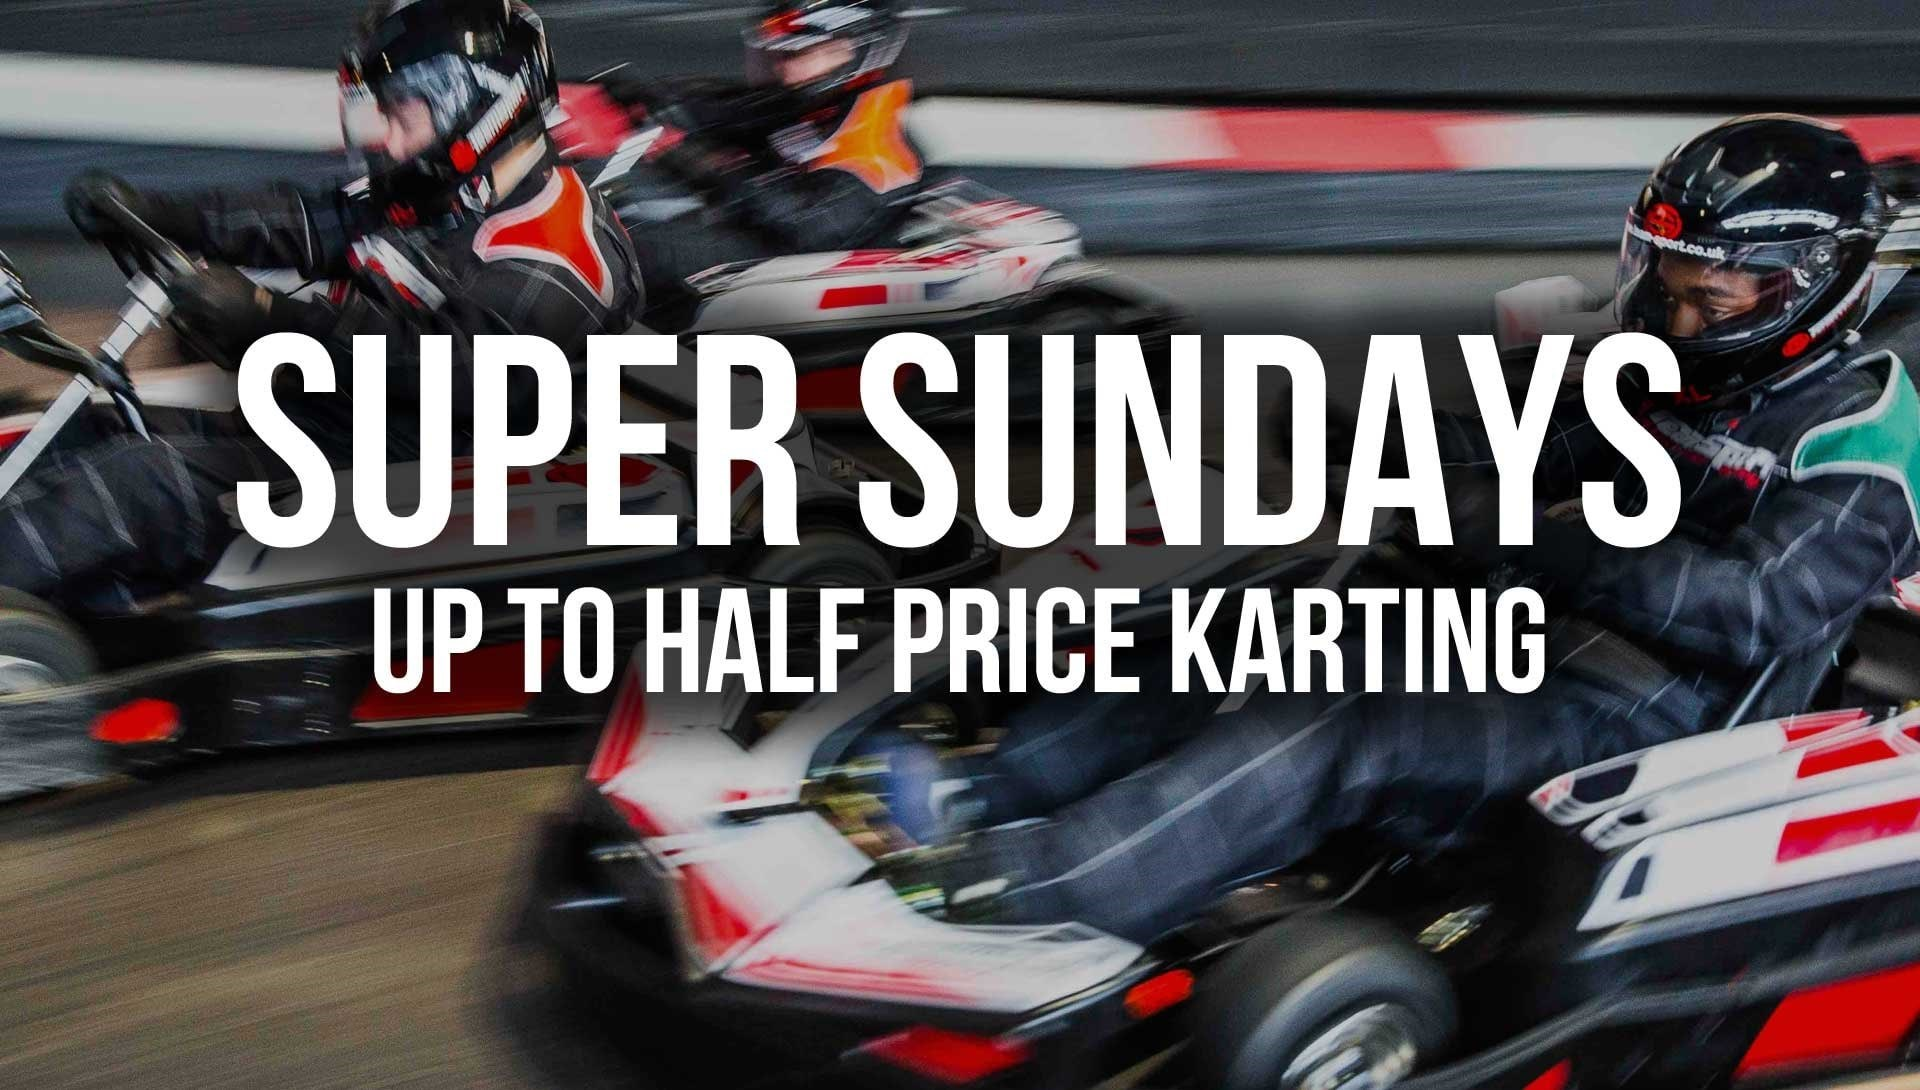 UNBEATABLE GO KARTING OFFERS - SUPER SUNDAYS